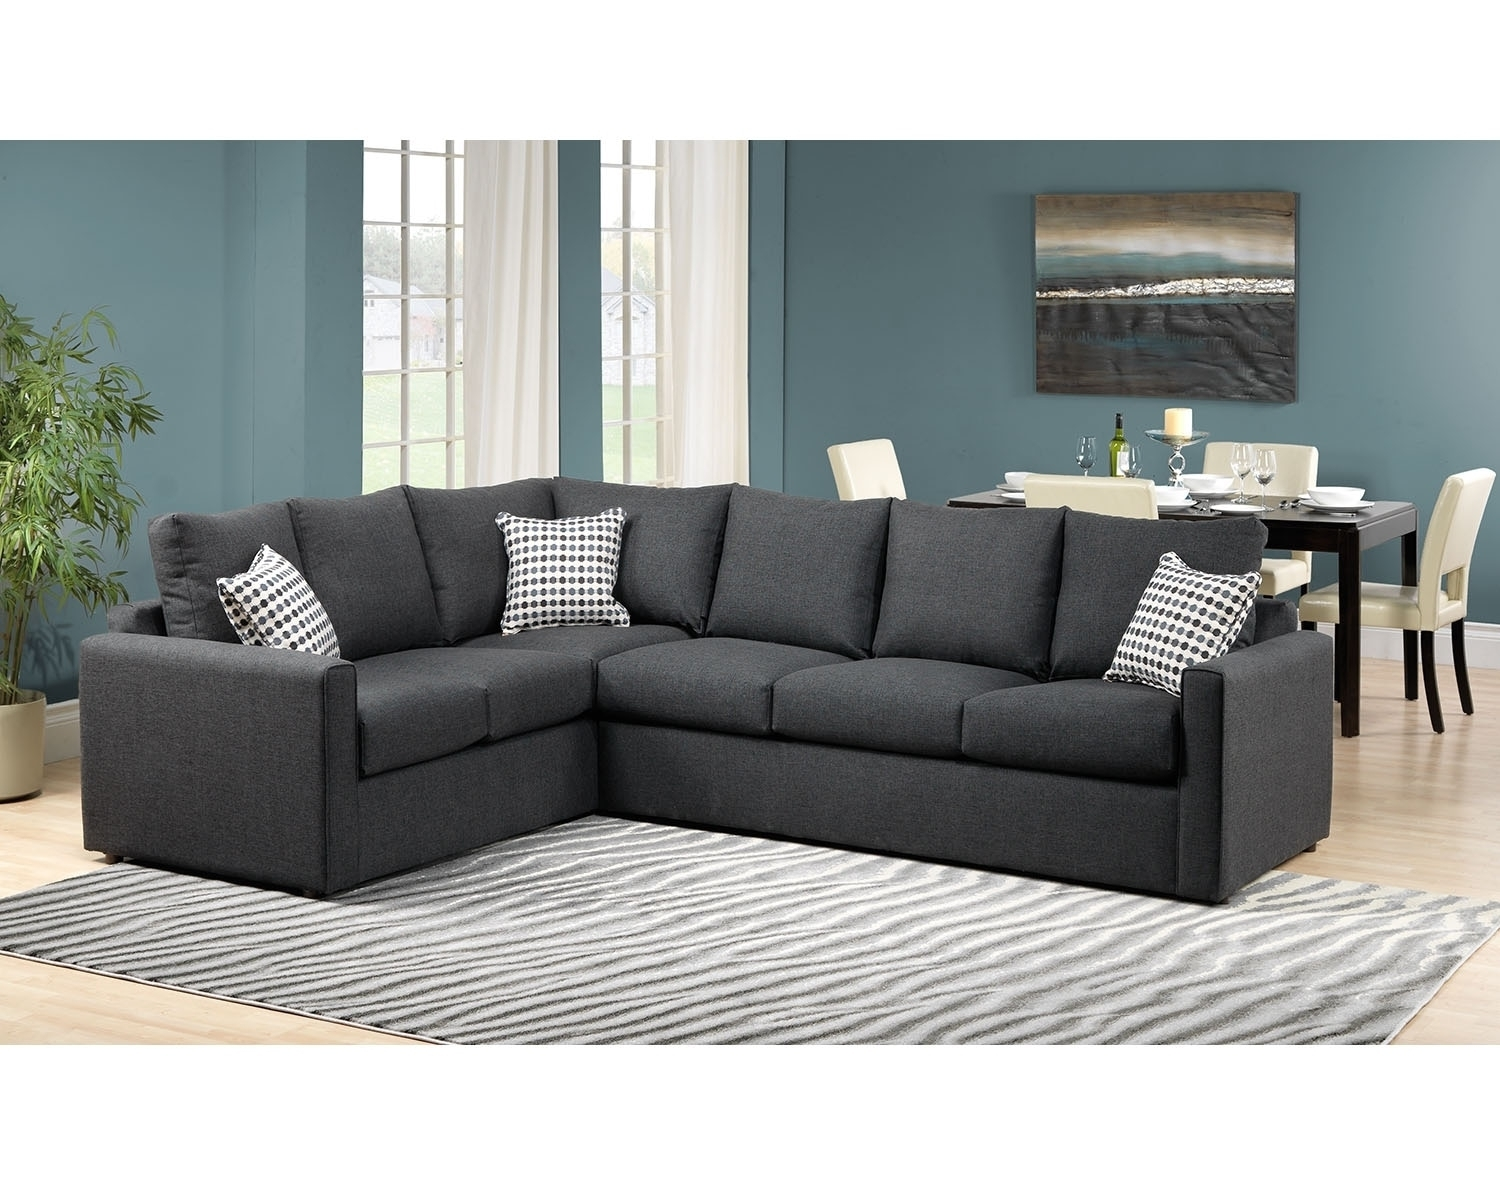 Athina 2-Piece Sectional With Right-Facing Queen Sofa Bed - Charcoal in Sectional Sofas at Brampton (Image 2 of 15)